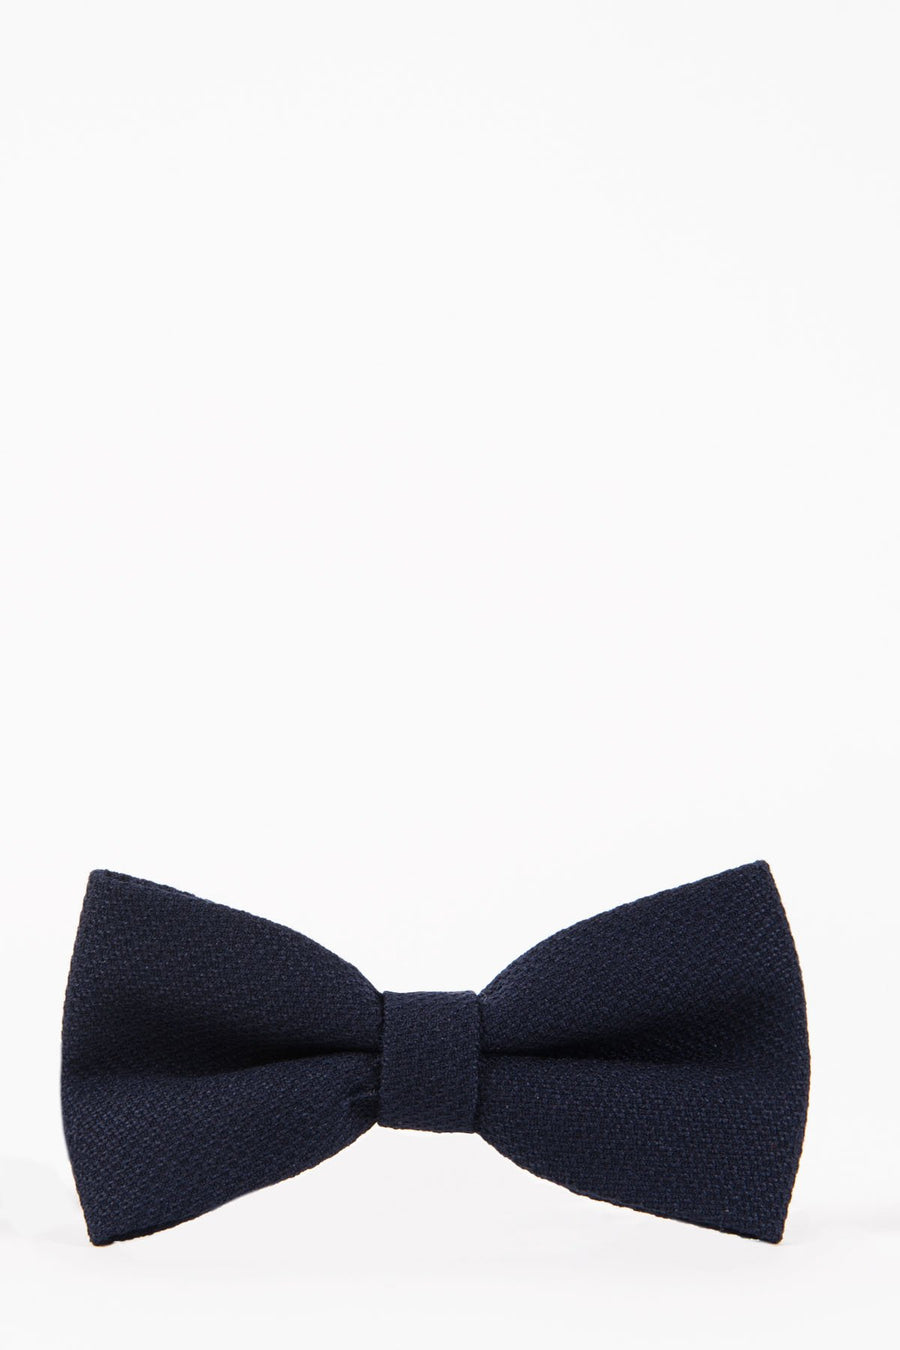 JD4 Navy Bow Tie - Wedding Suit Direct